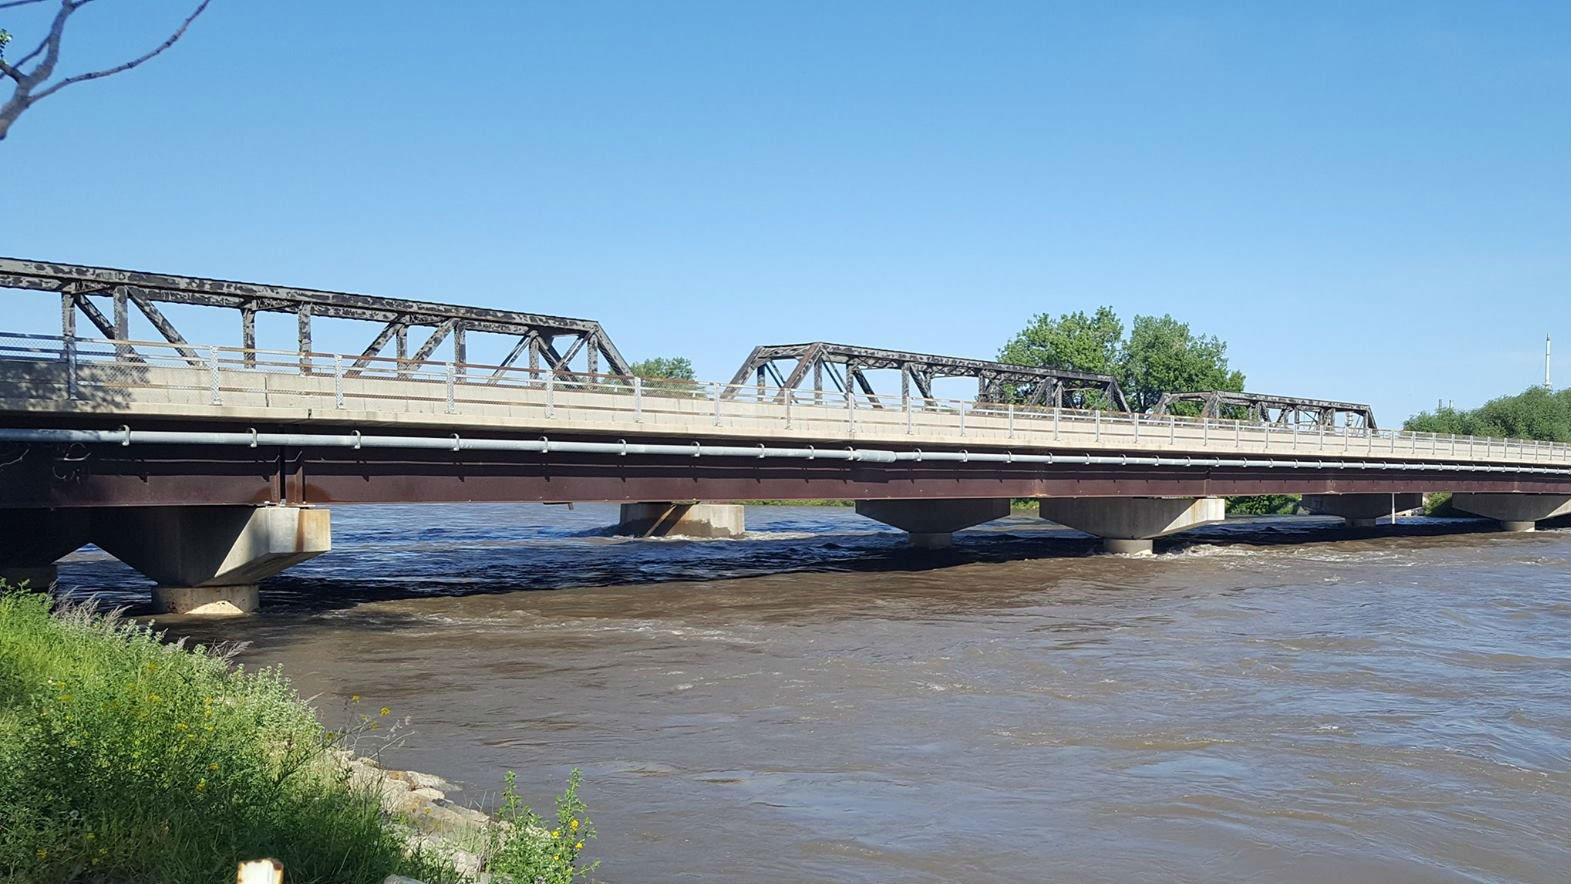 Image of Yellowstone River from 2017, Yellowstone County Sheriff's Office